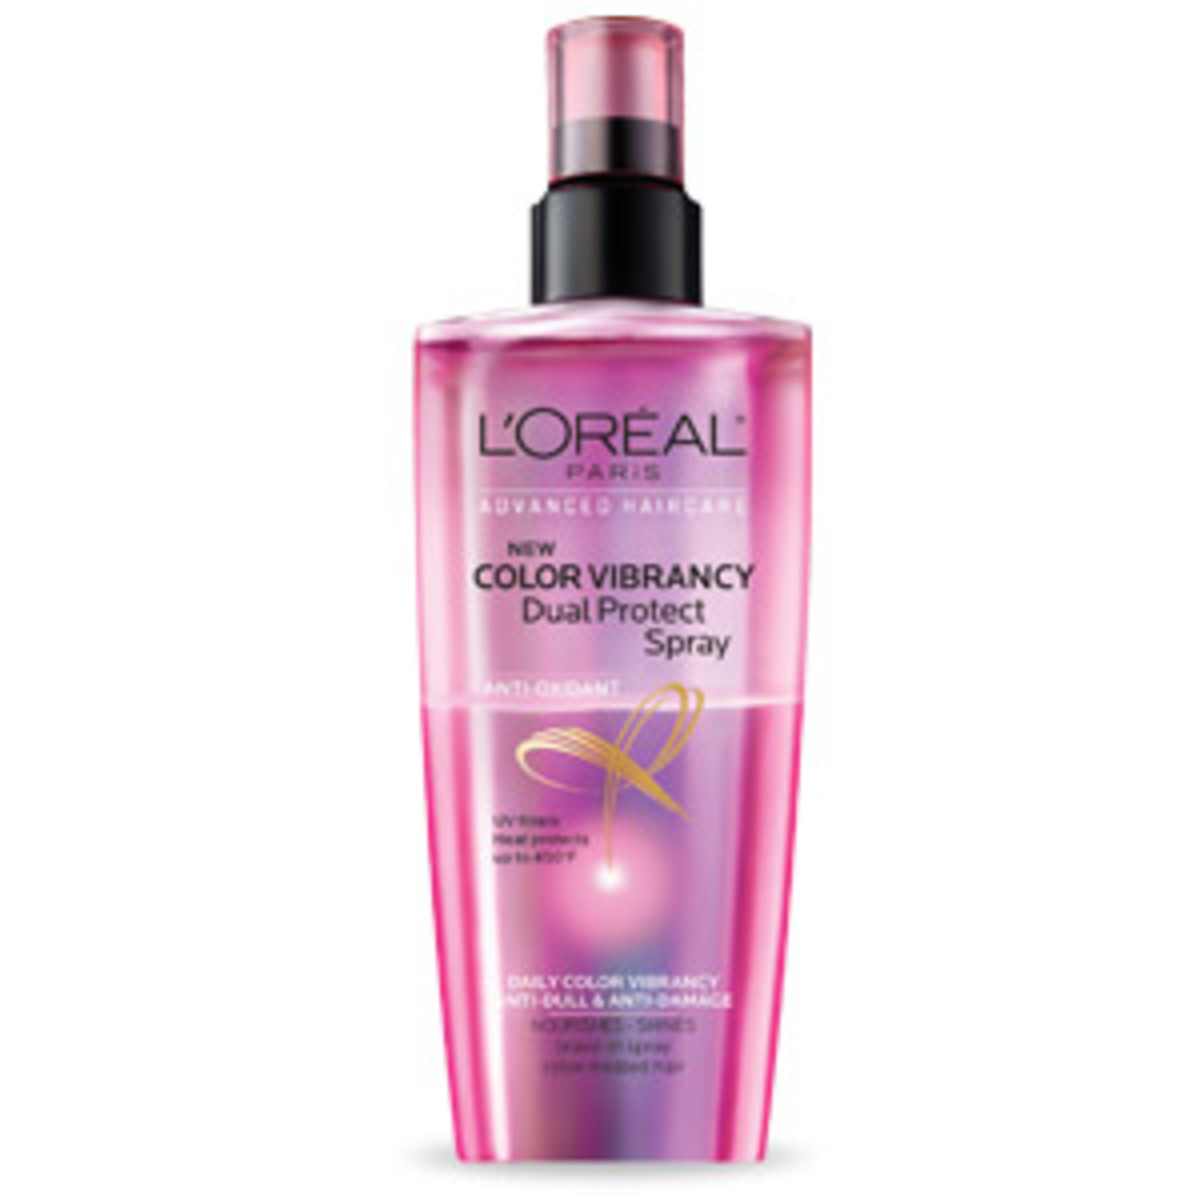 L'Oreal Review